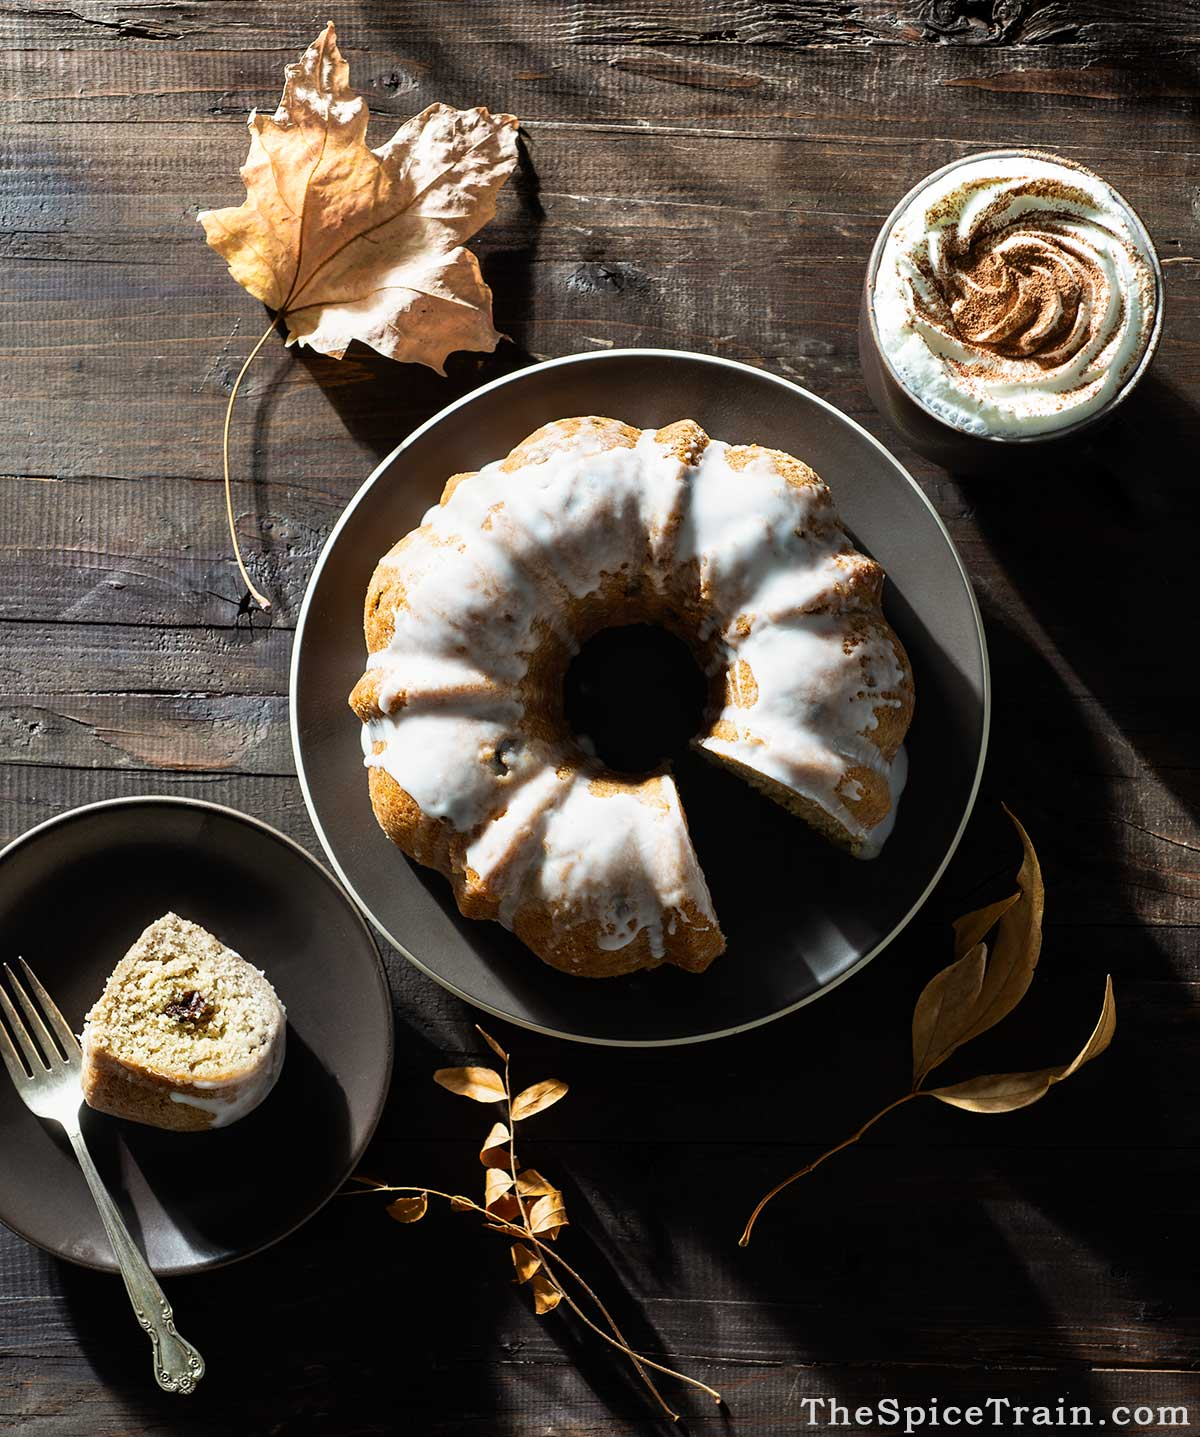 A glazed bundt cake with one cut out slice and a cup of hot chocolate.